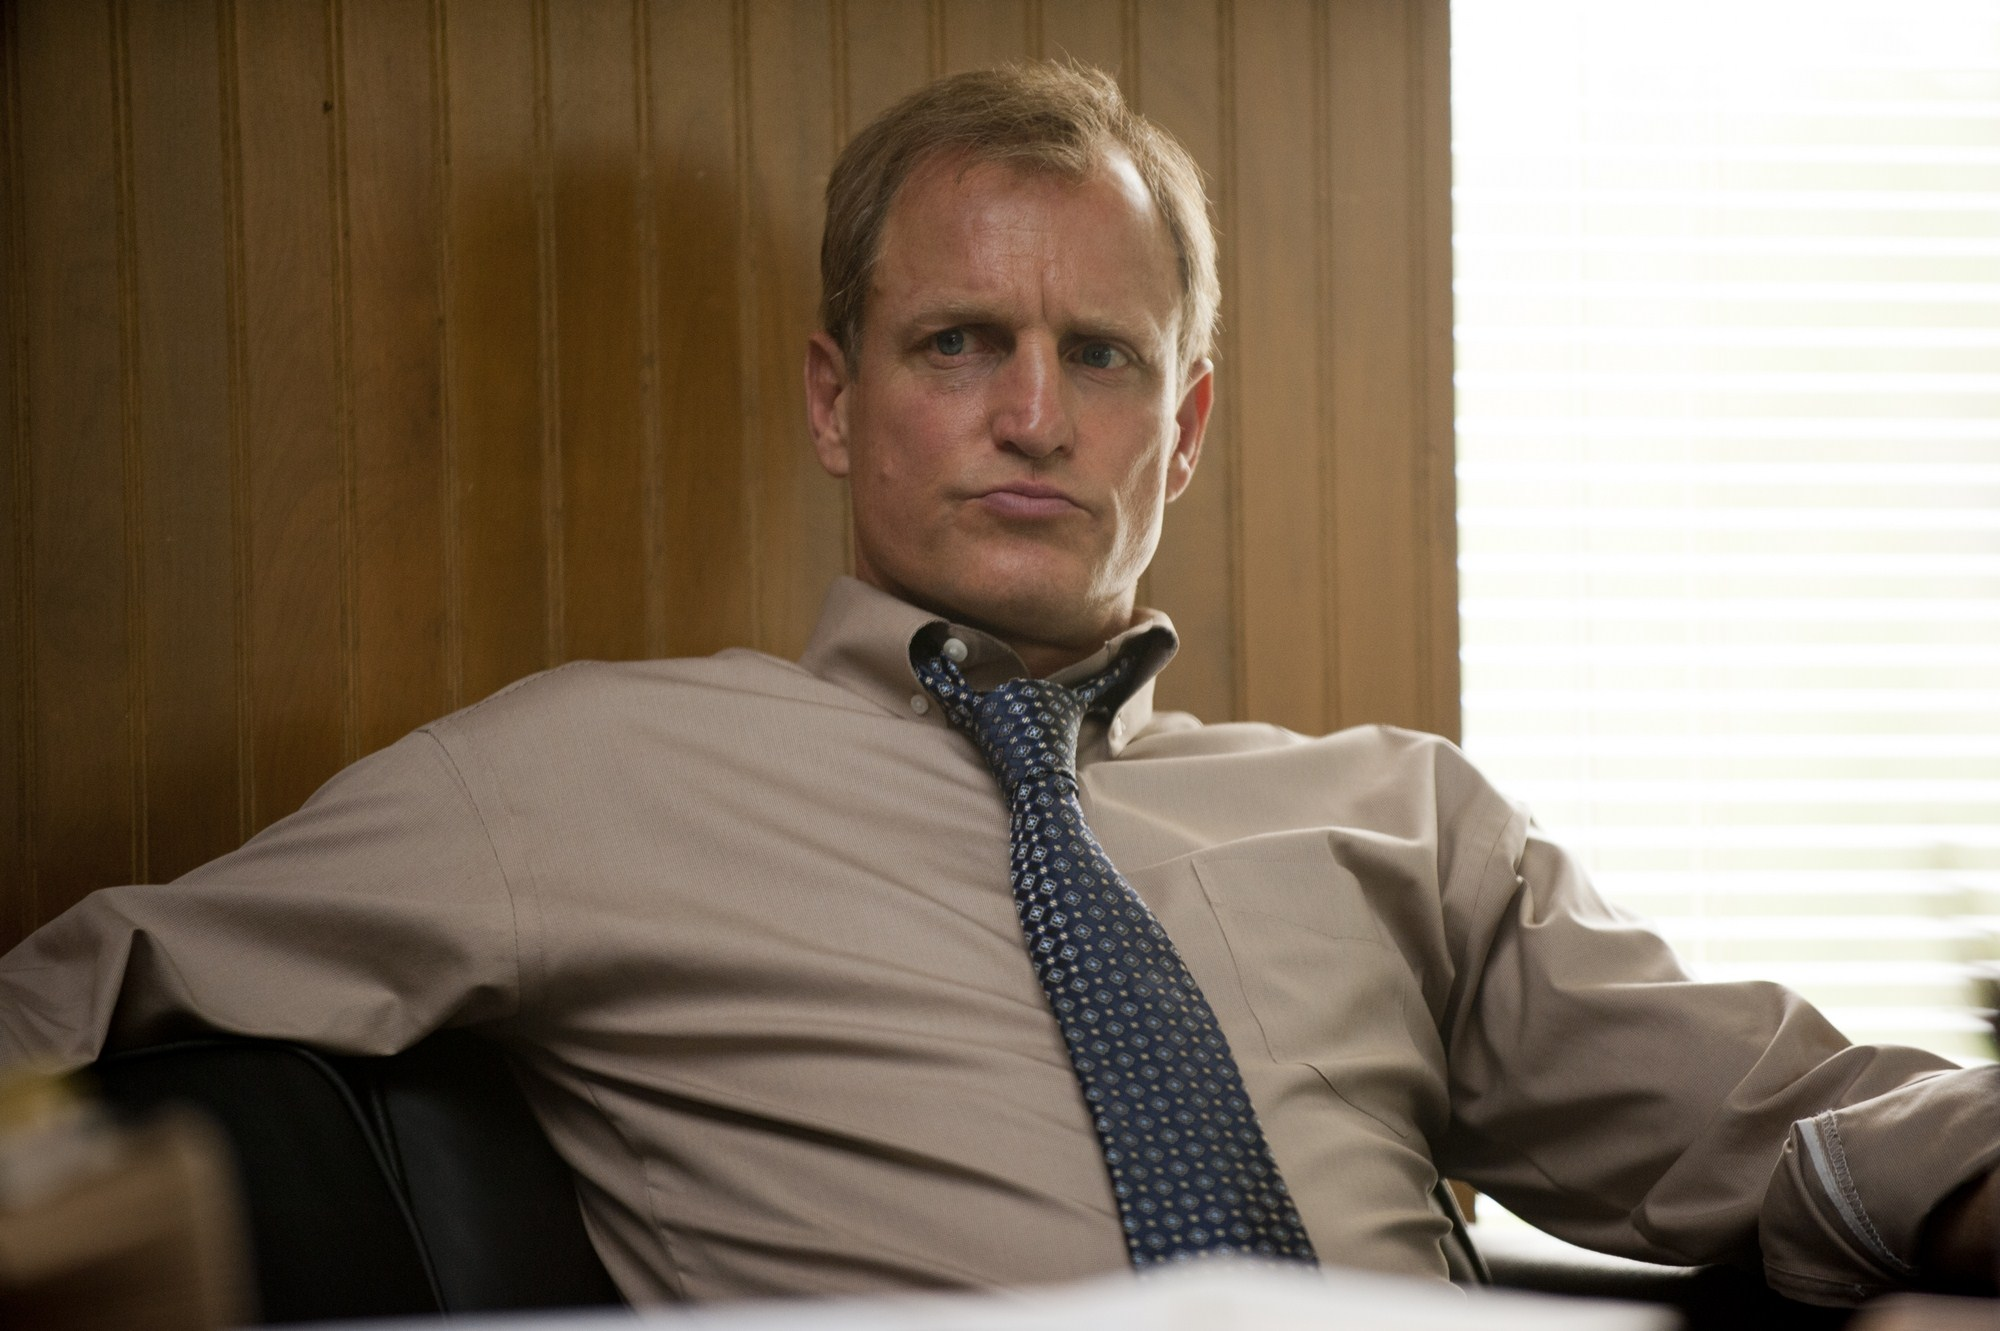 Woody Harrelson Wallpapers 56106 2000x1331px